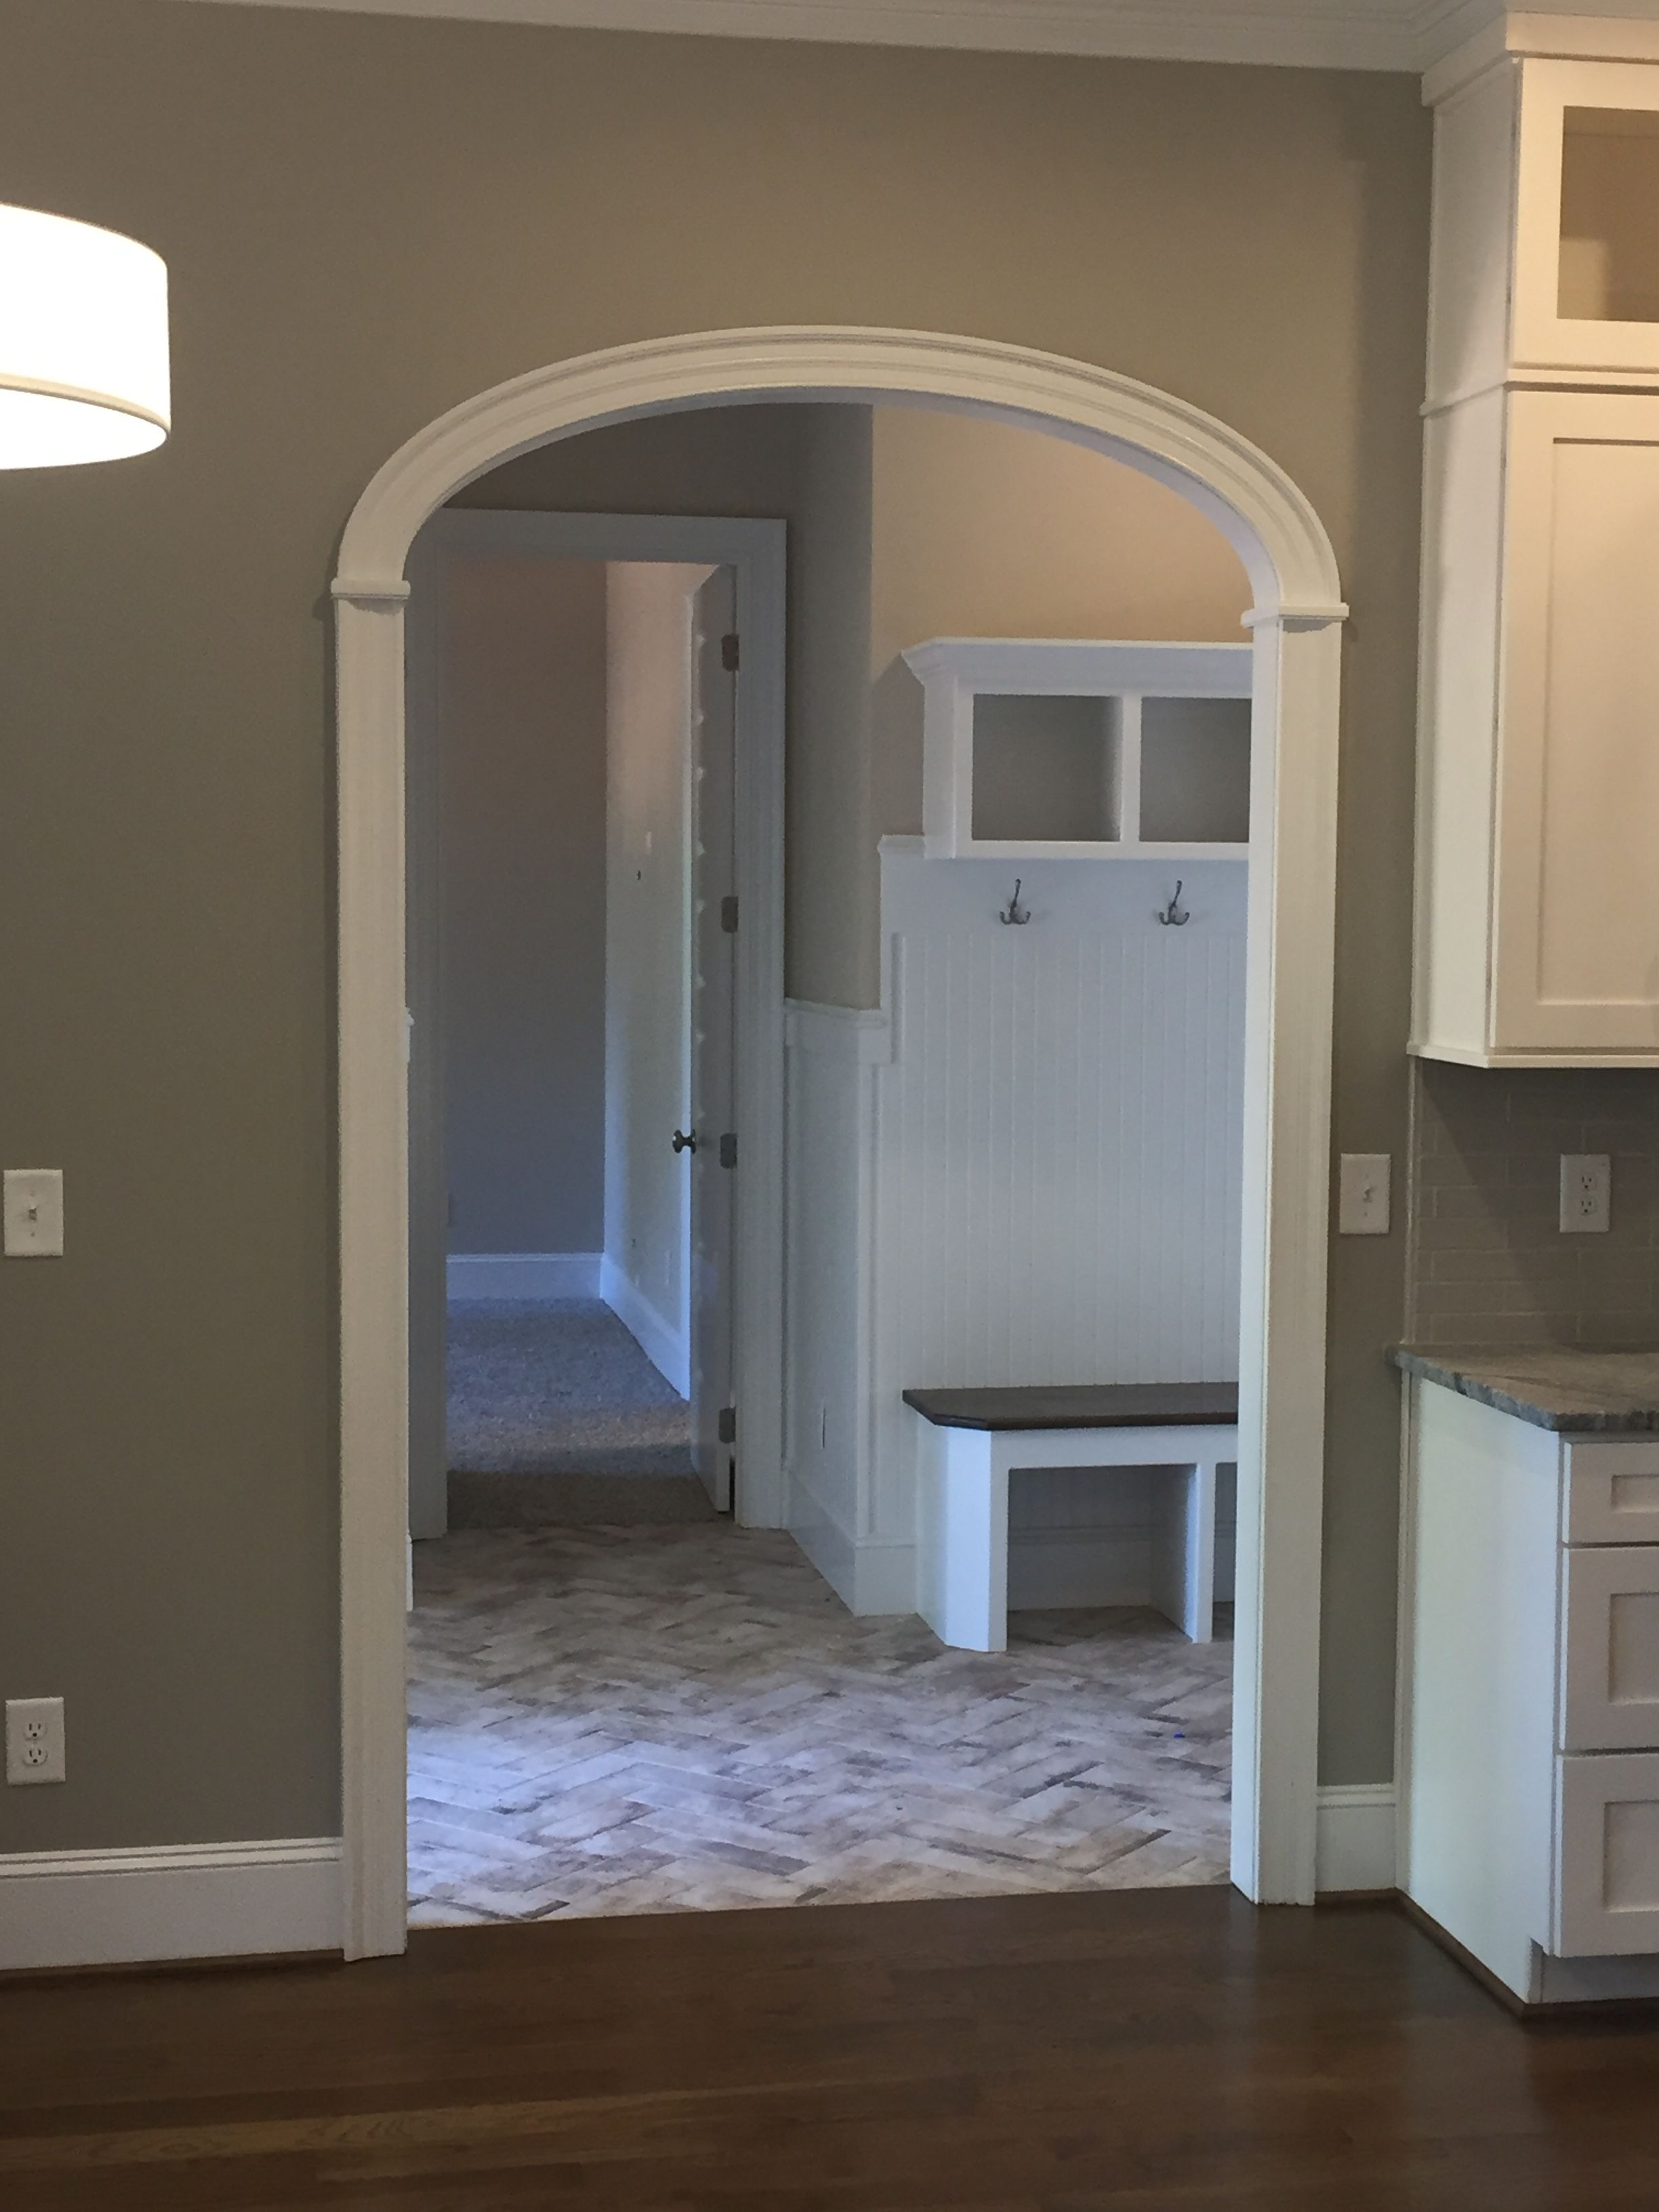 Arch Doorway In Mudroom Great Entry Point To A Large Open Kitchen Area Doorway Ideas Interior Arch Doorway Moldings And Trim